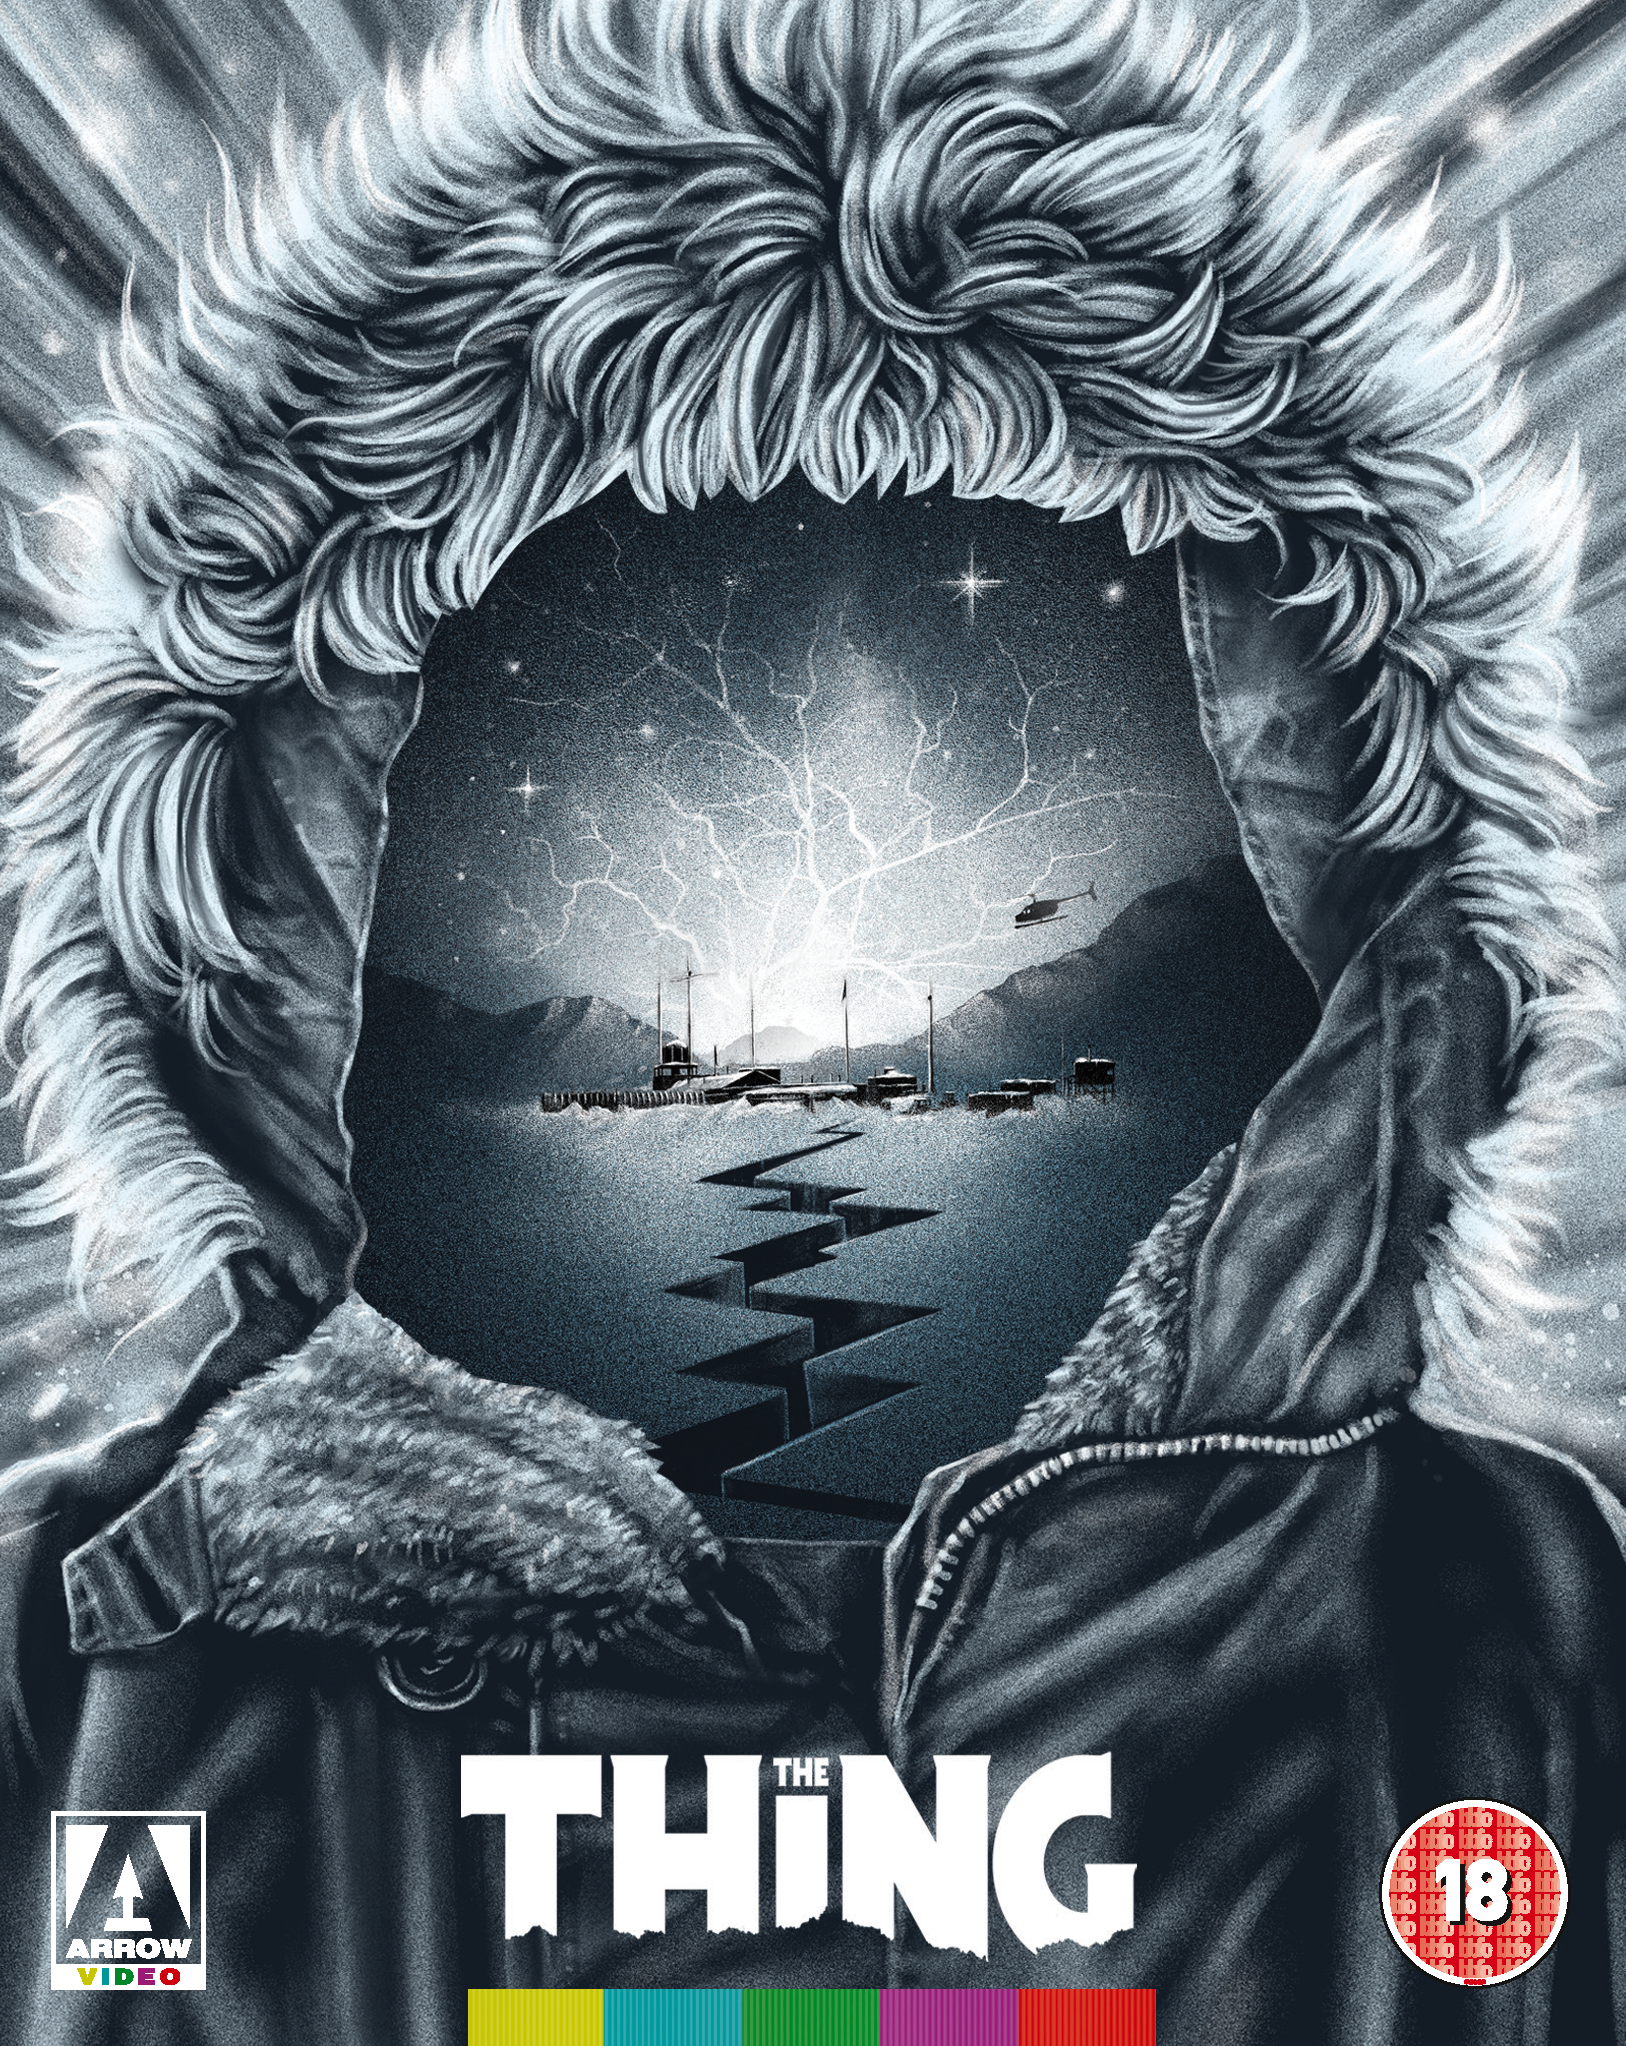 THE THING SLIPCASE UK 2D Arrow Video November 2017 releases announced